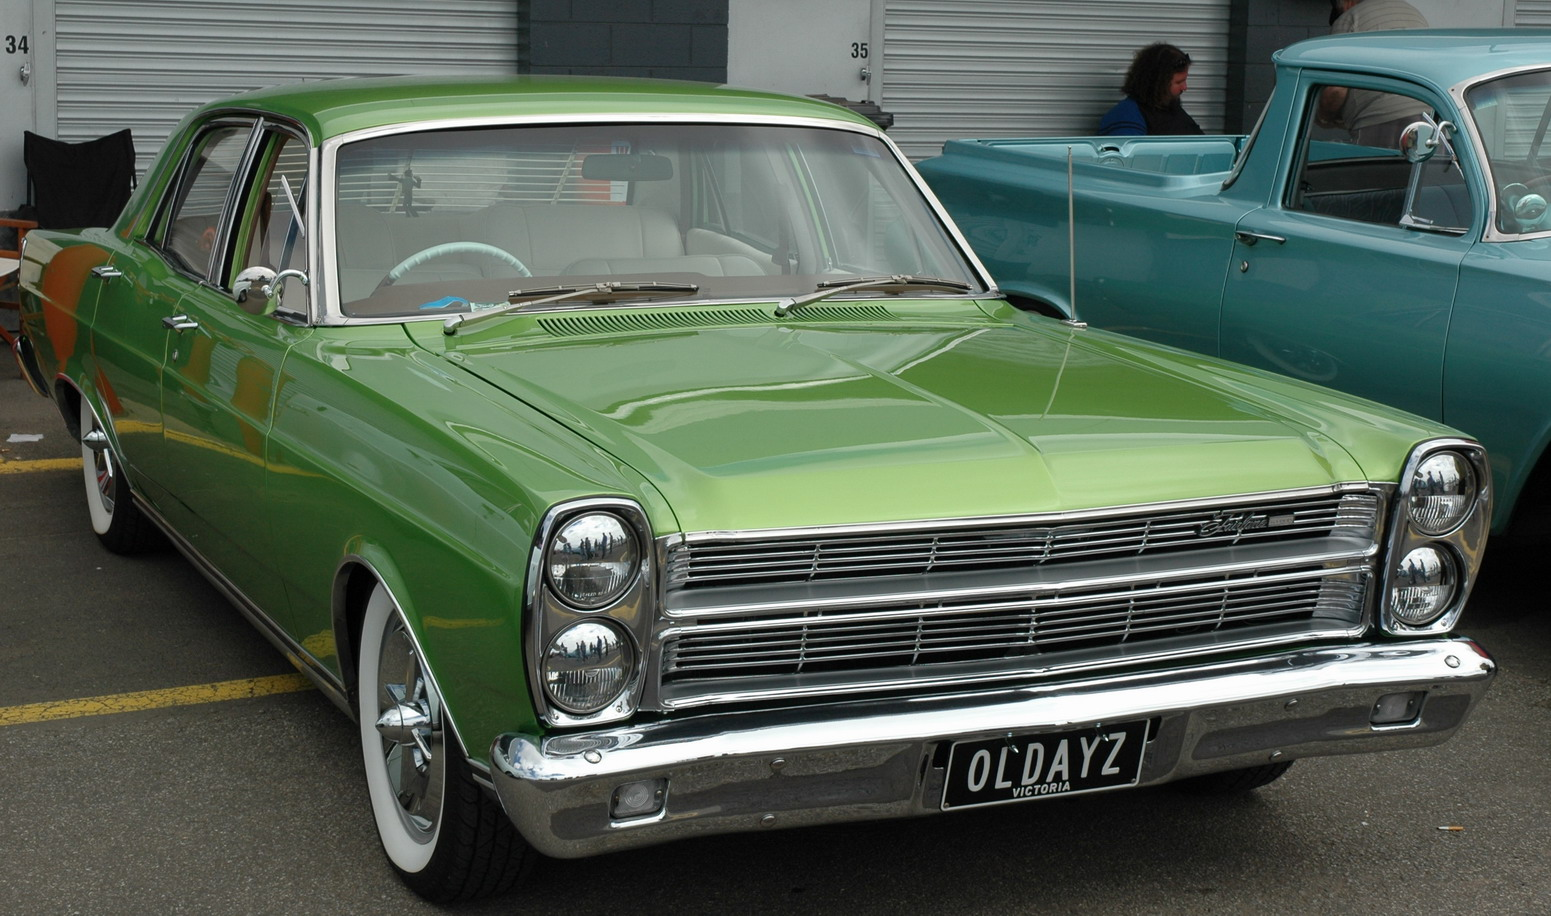 http://static.cargurus.com/images/site/2009/08/12/02/06/1970-ford-fairlane-pic-20744.jpeg